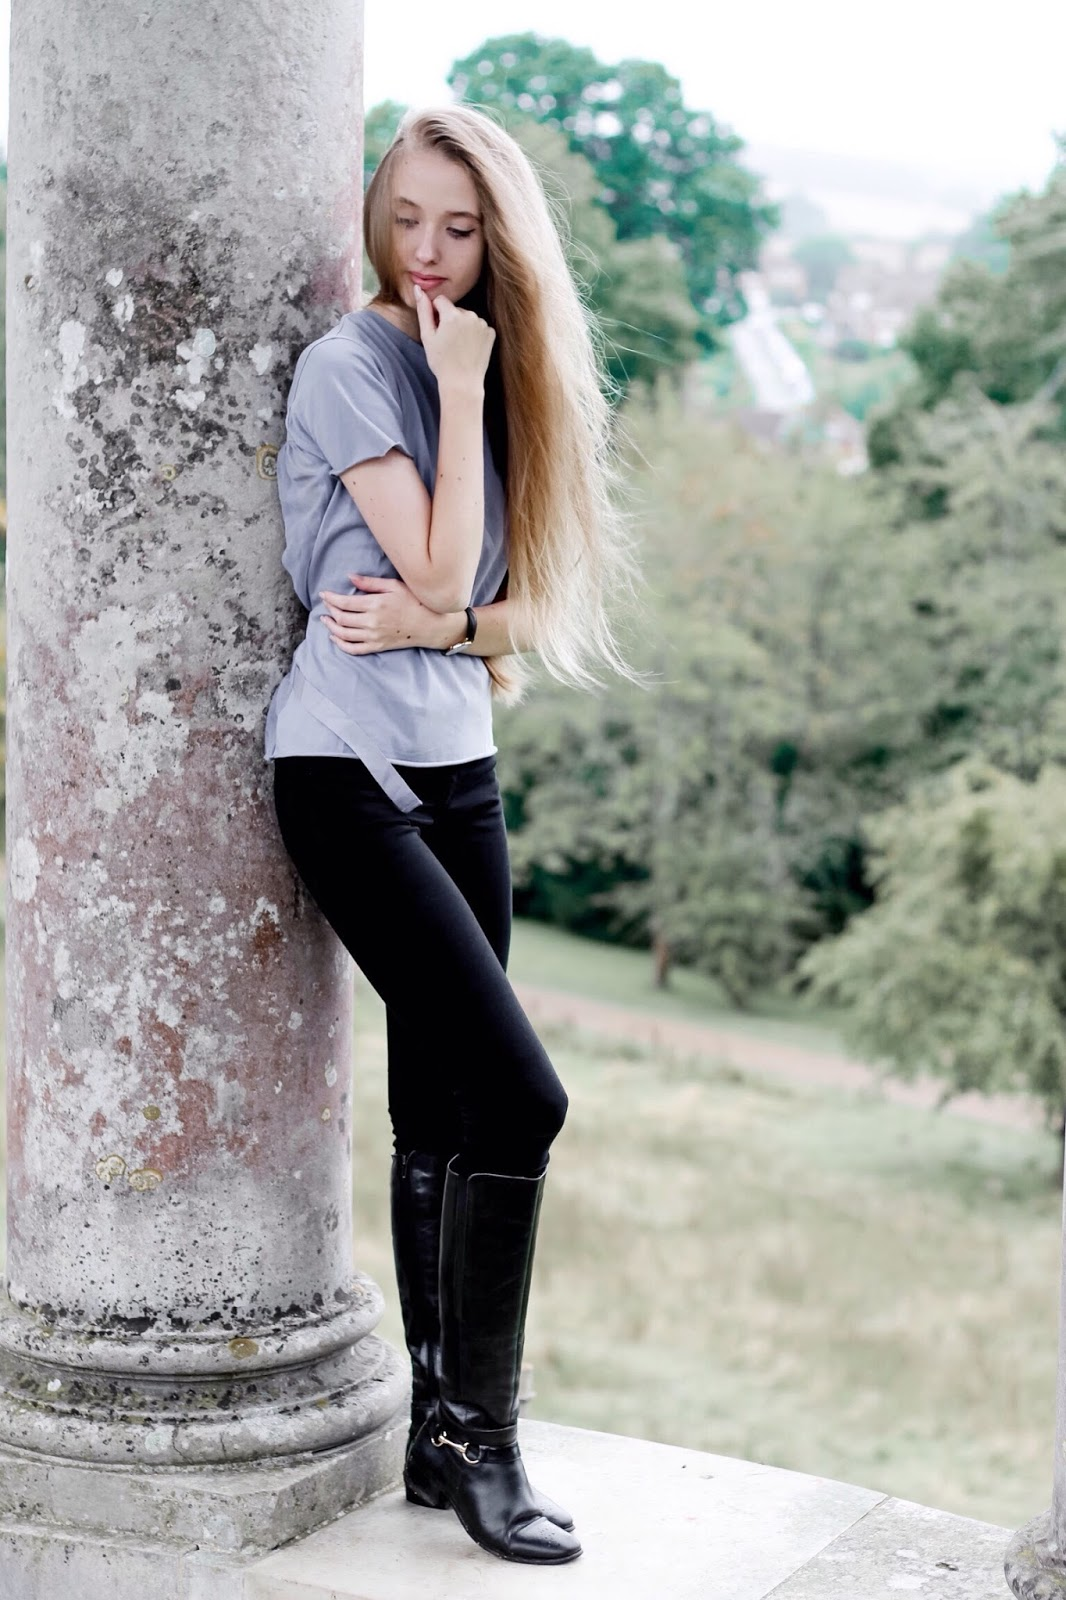 Casual Riding Boots Jeans and Tee Styling for Autumn